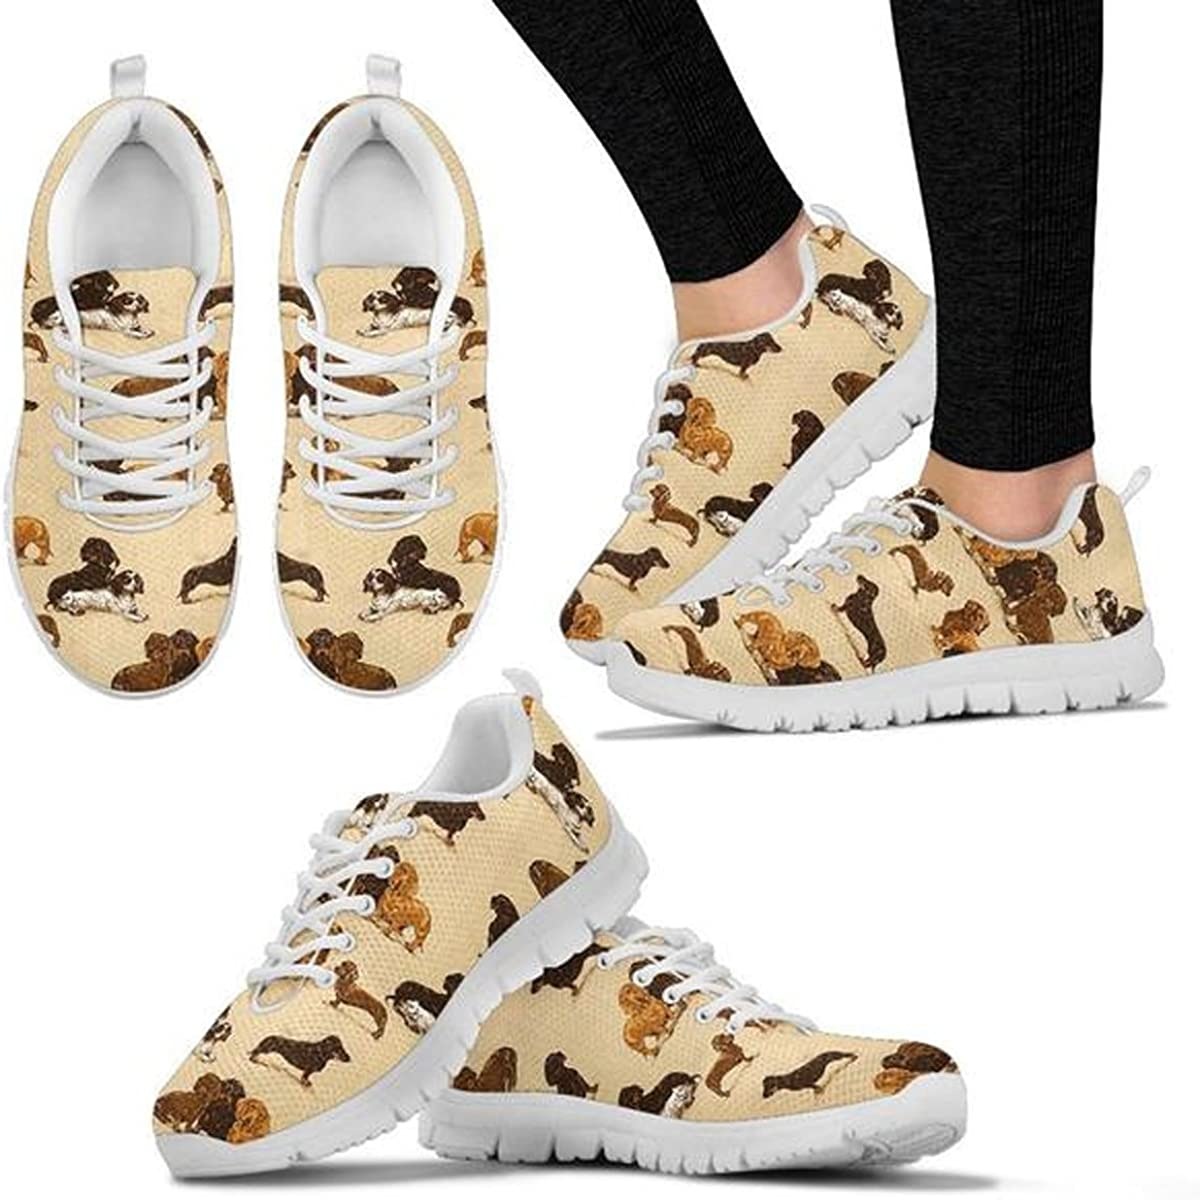 Women's Sneakers - All Dog Pattern Print Women's Casual Running Shoes (Choose Your Breed) Dachshund